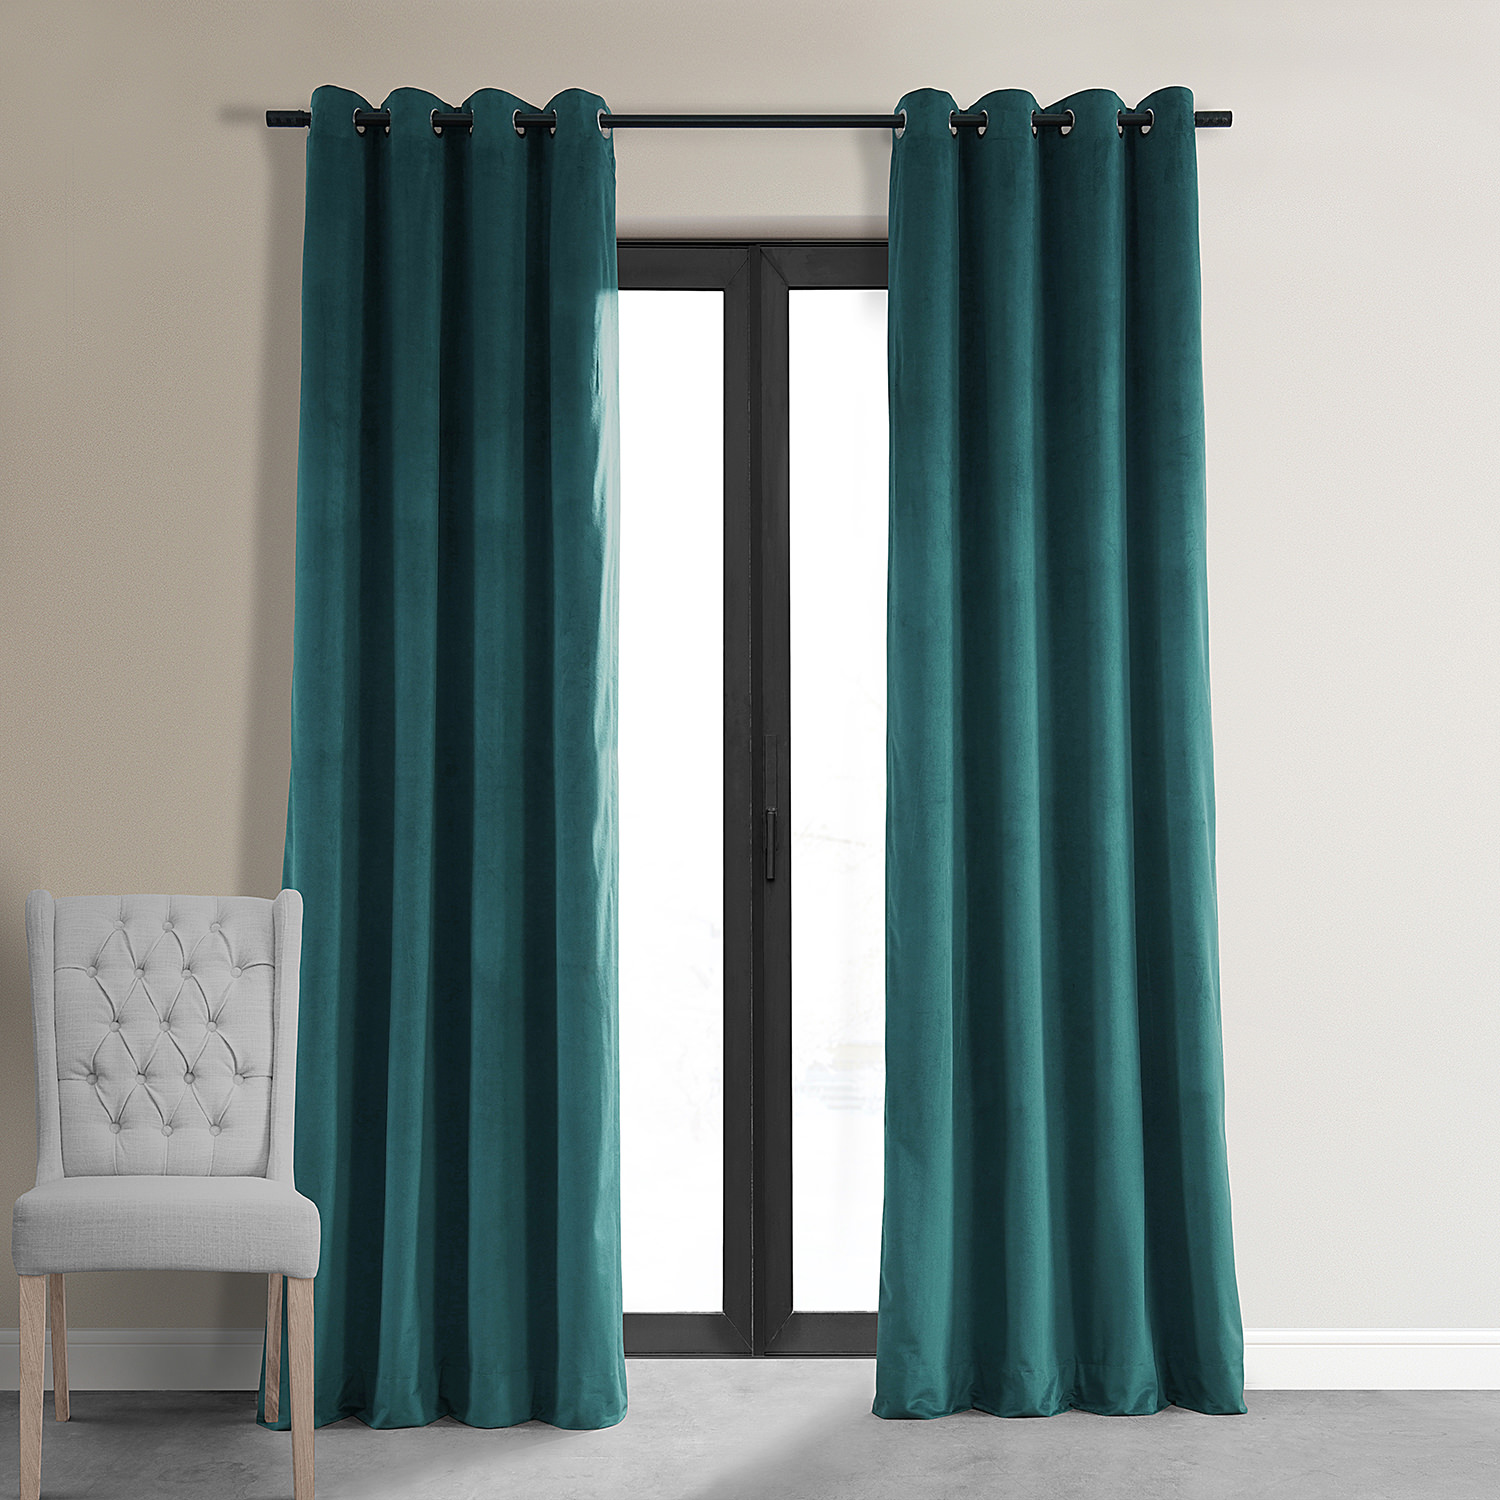 Design Velvet Curtains signature everglade teal grommet blackout velvet curtains curtain